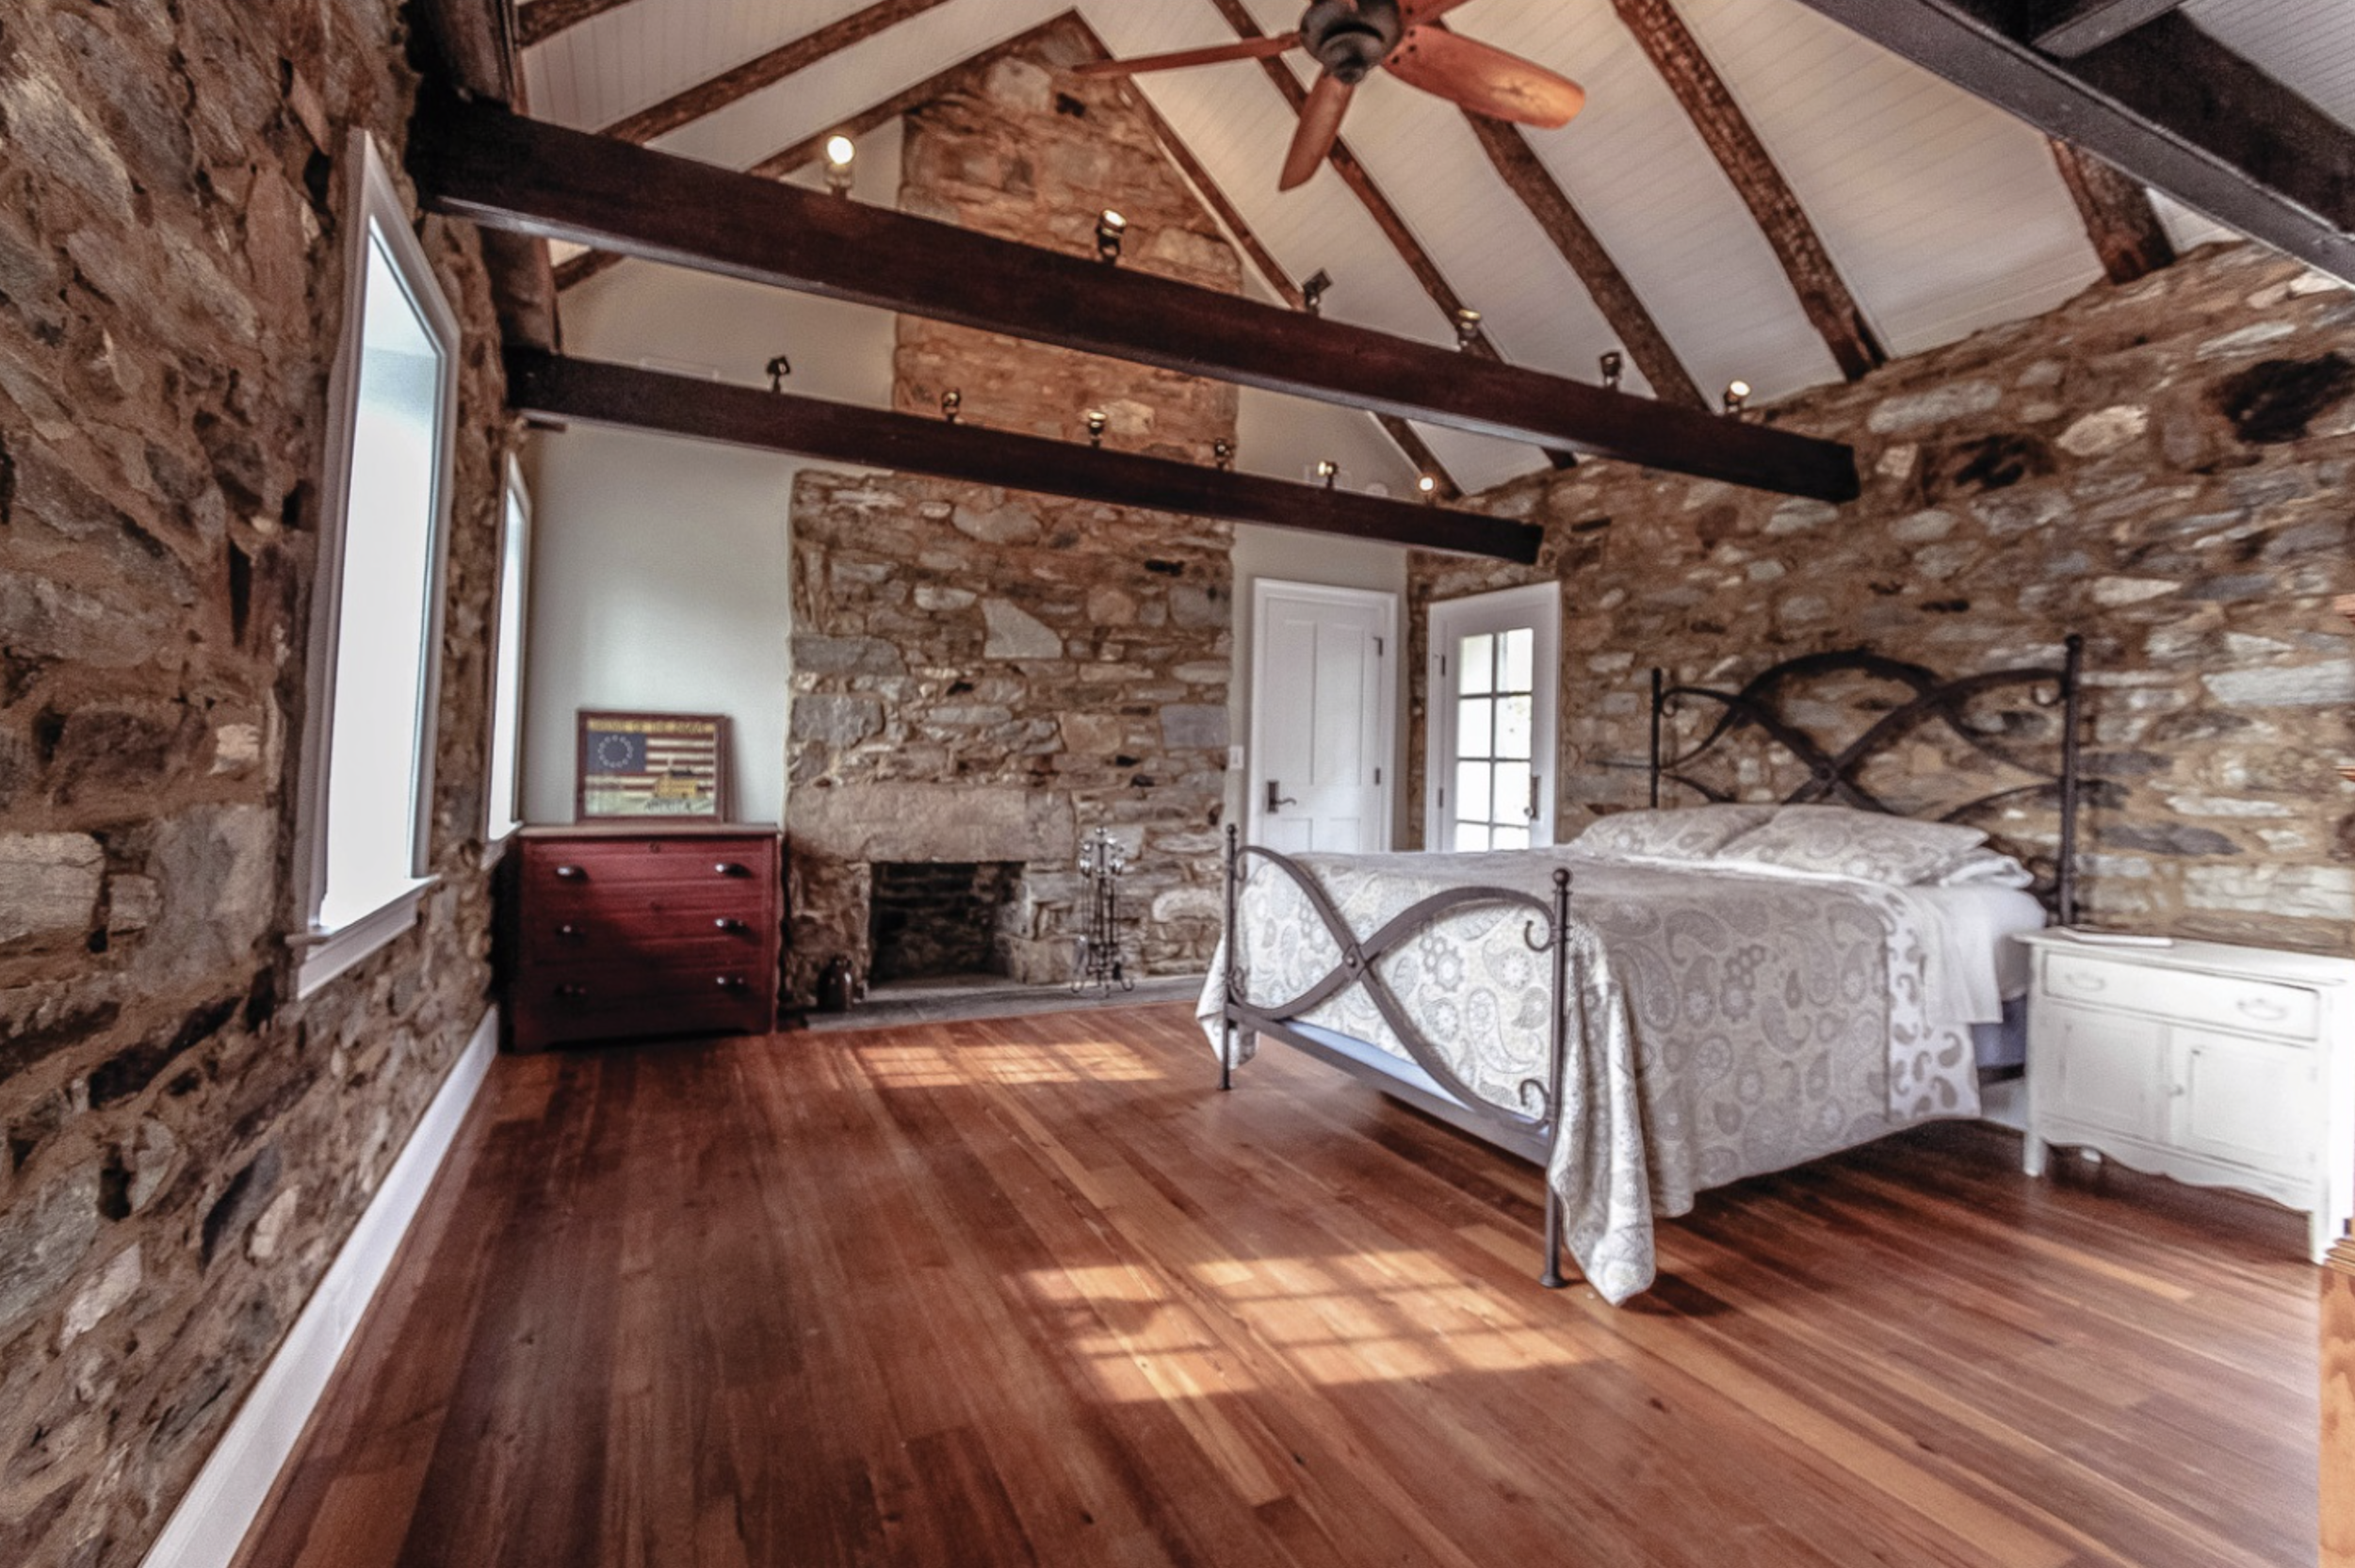 Historic Hillsboro Stone House Bedroom After Renovation Photo